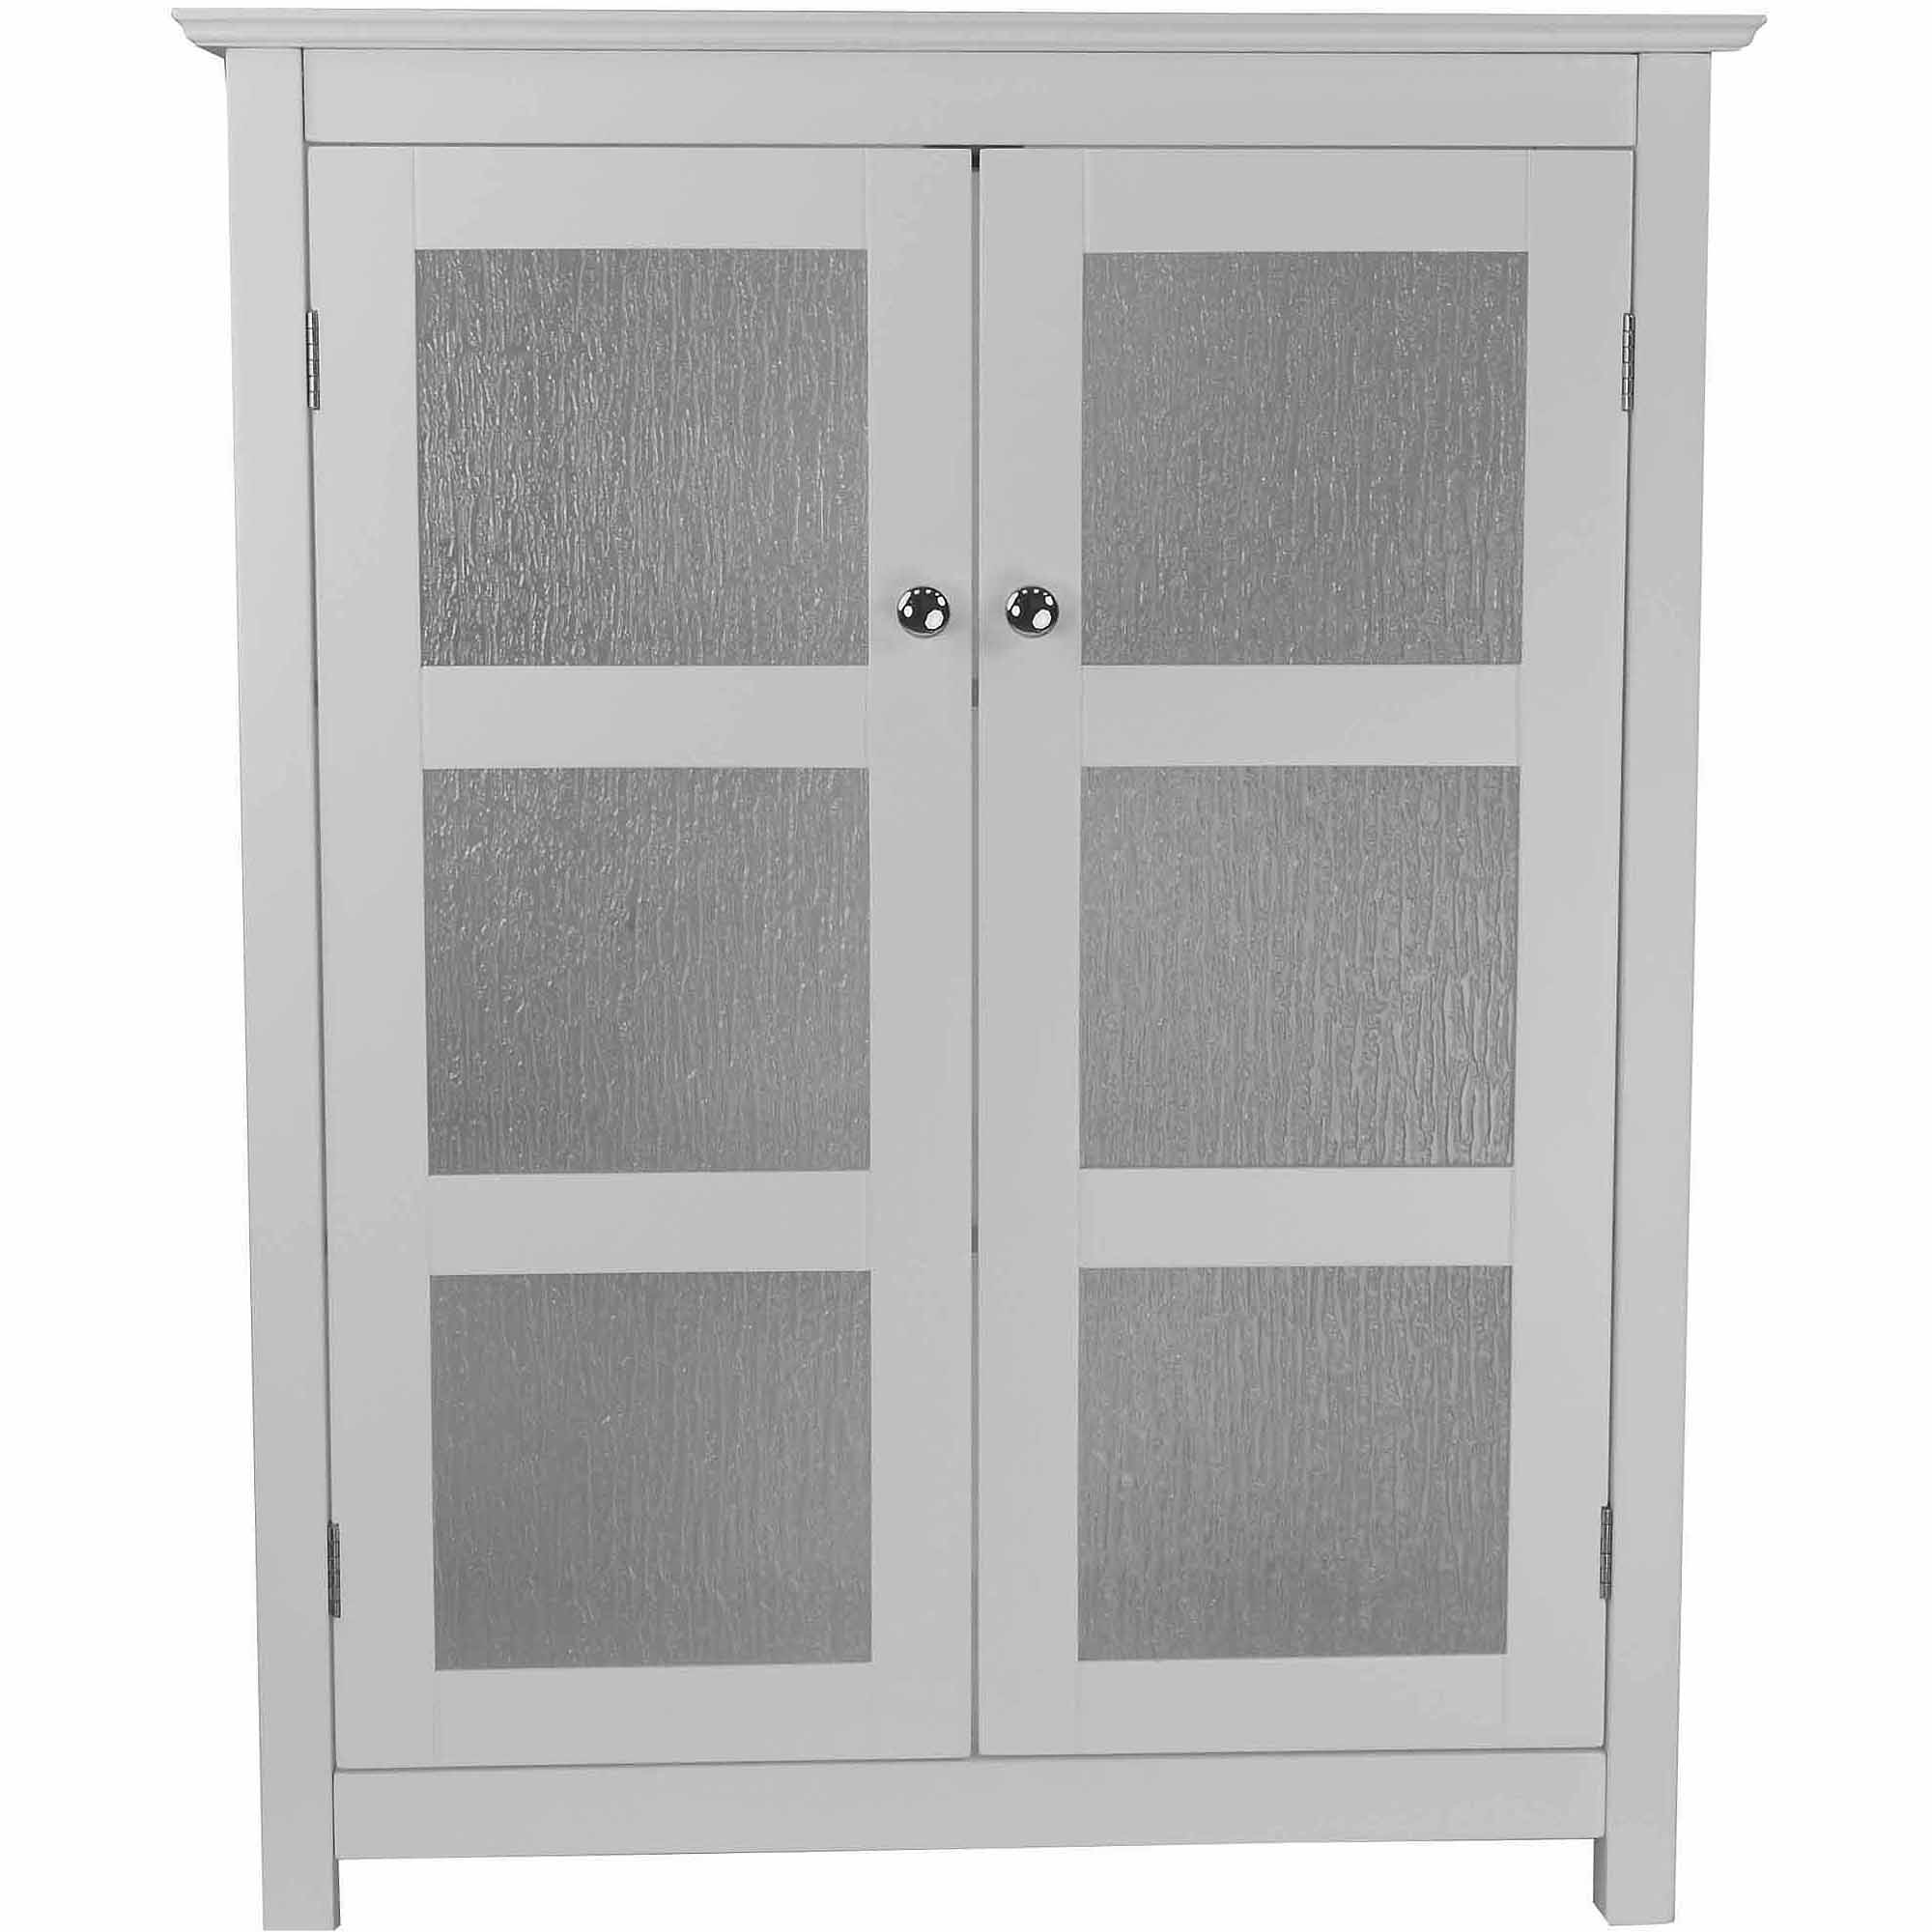 Charmant Connor Floor Cabinet With 2 Glass Doors, White   Walmart.com